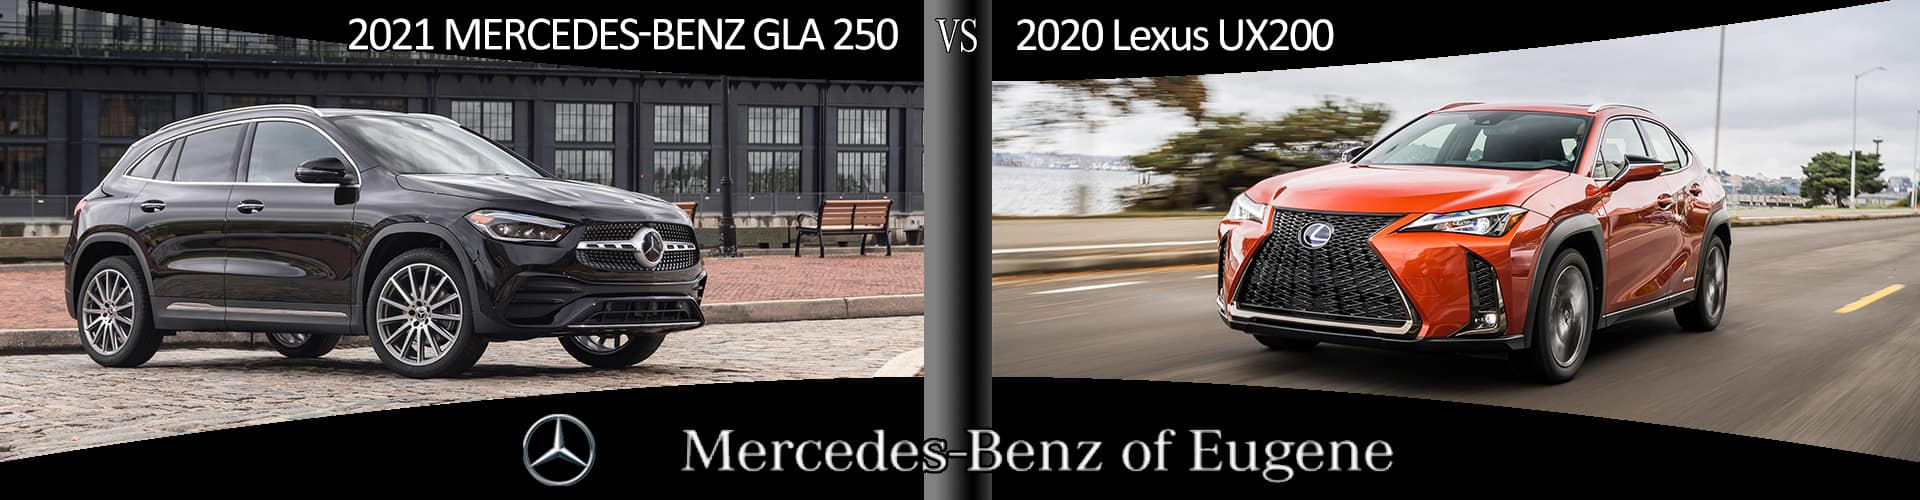 Why drive the Lexus UX200 when you can own the more luxurious and sport Mercedes-Benz GLA 250 at Mercedes-Benz of Eugene